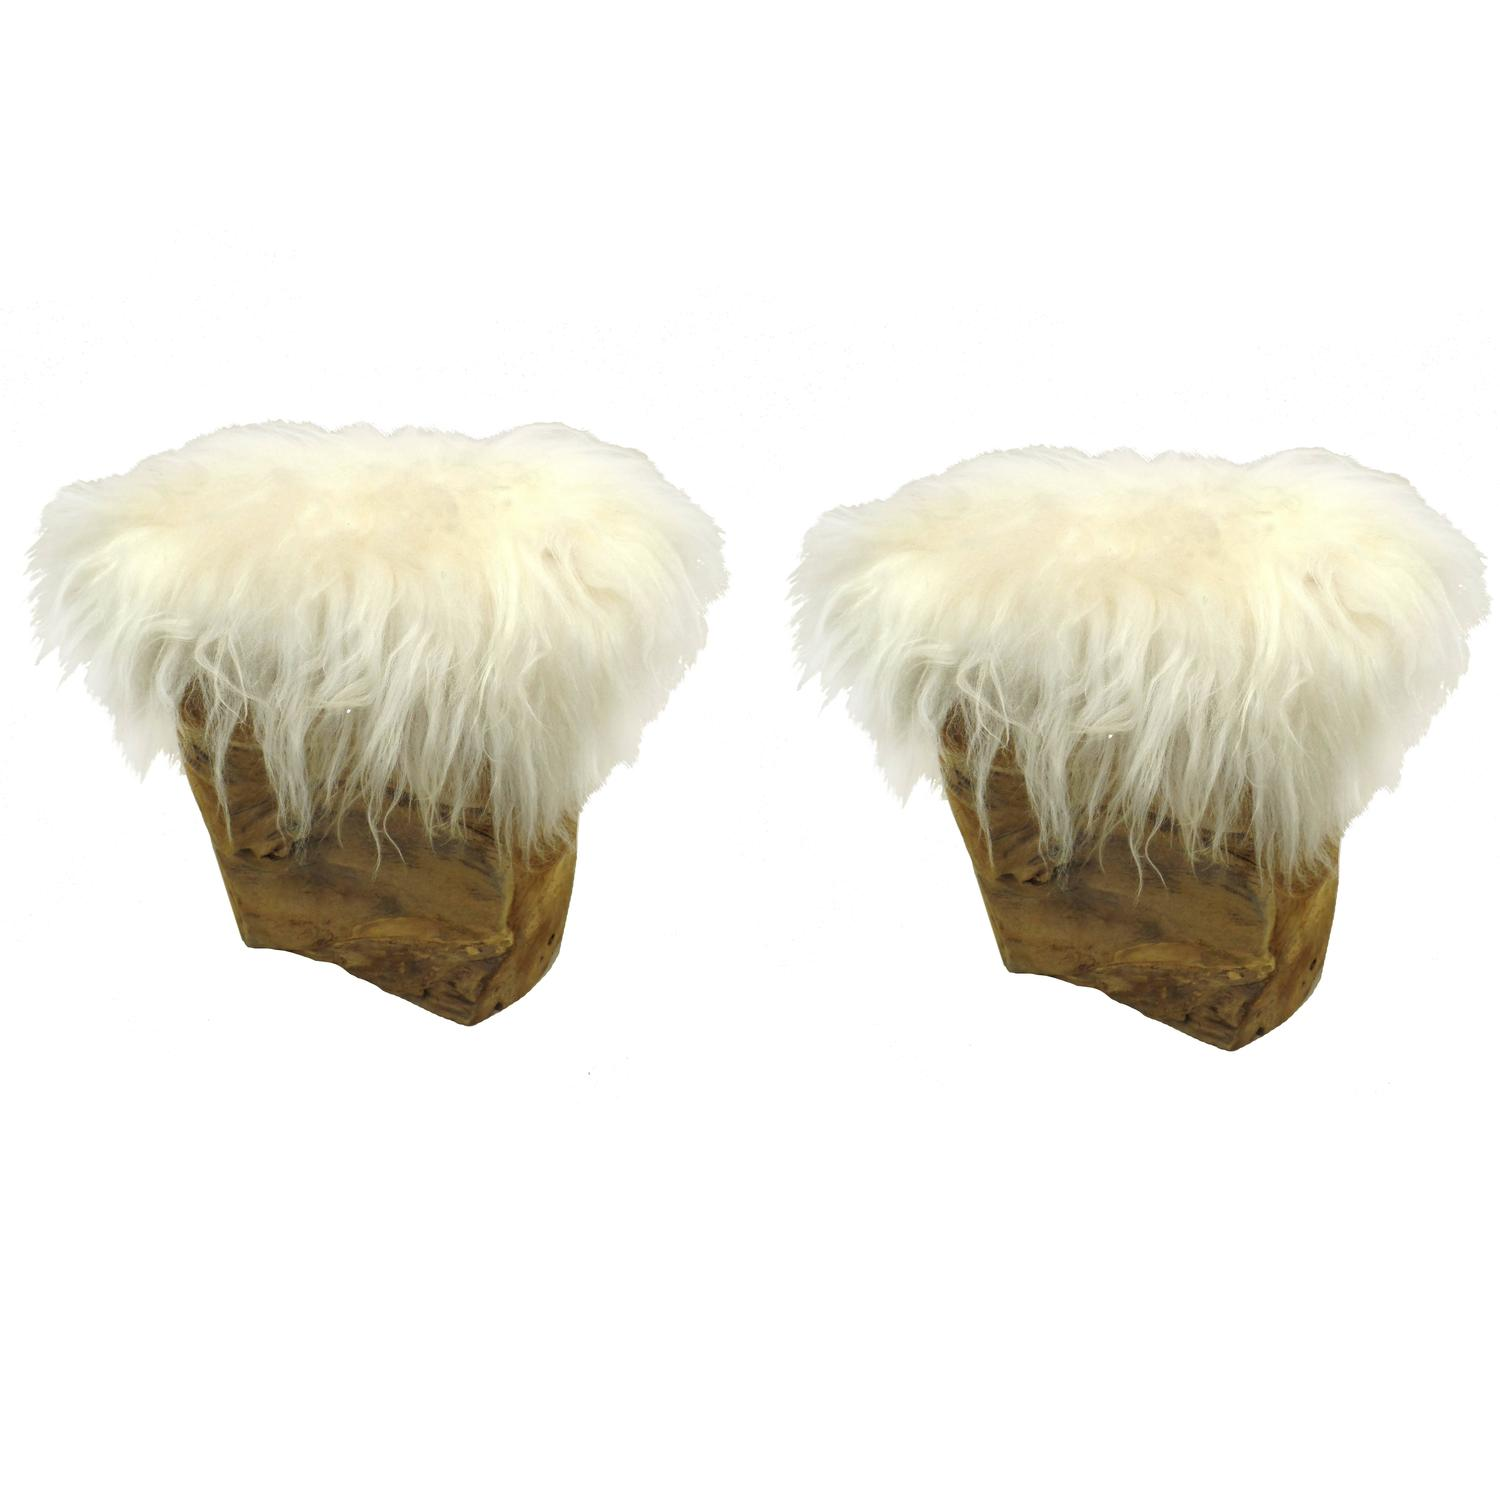 Pair of Italian Goat Skin Benches/Stools